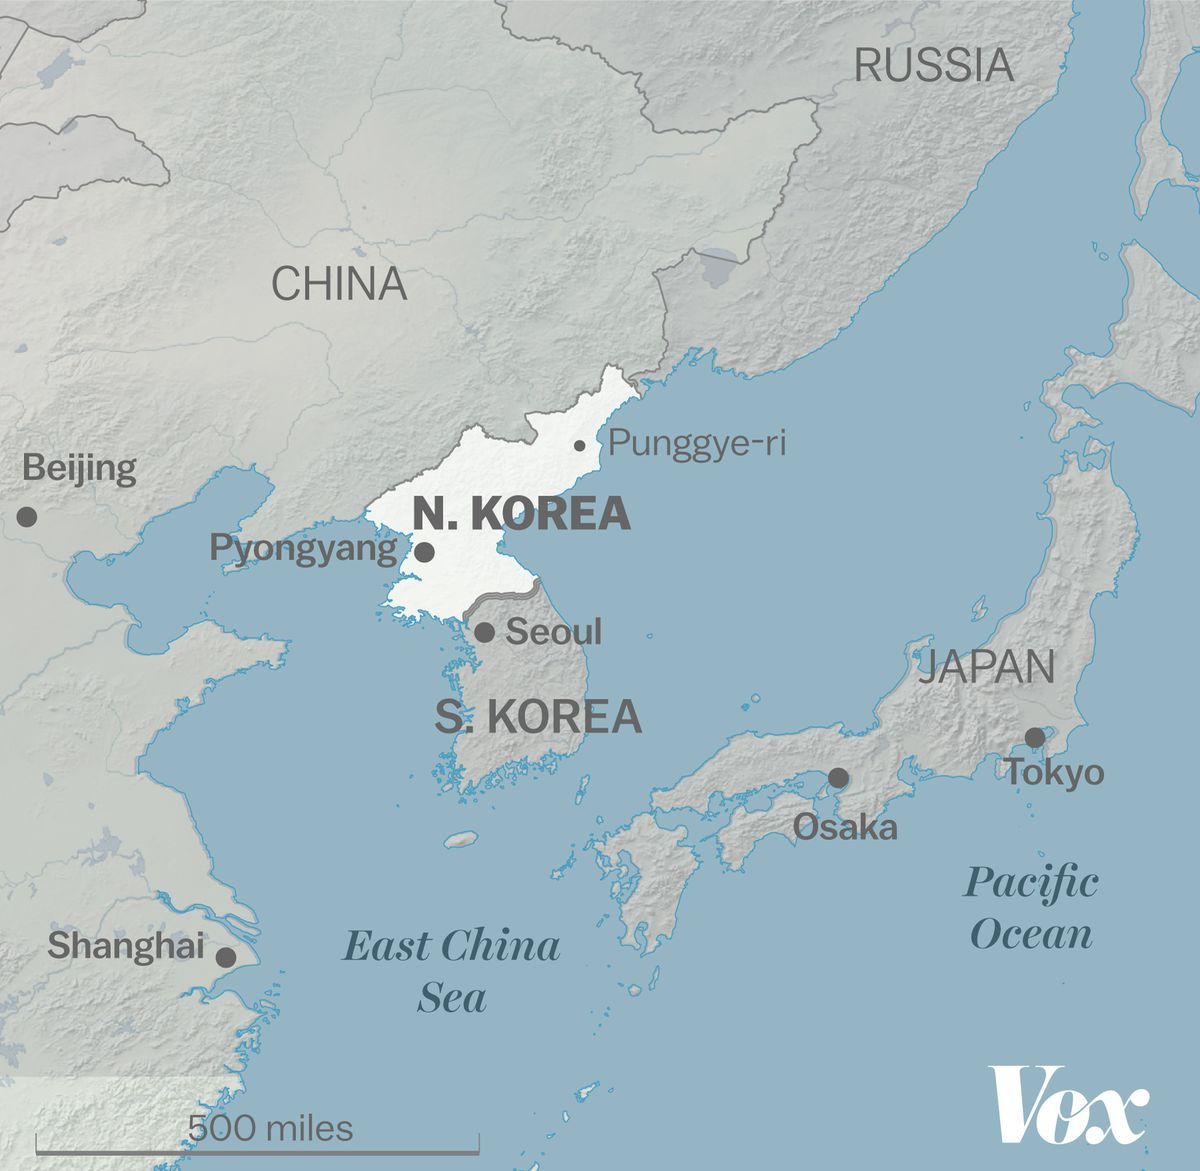 North korea 9 questions you were too embarrassed to ask vox is a small country sandwiched between china and south korea in northeast asia it is home to an estimated 25 million people nearly 3 million of whom gumiabroncs Gallery